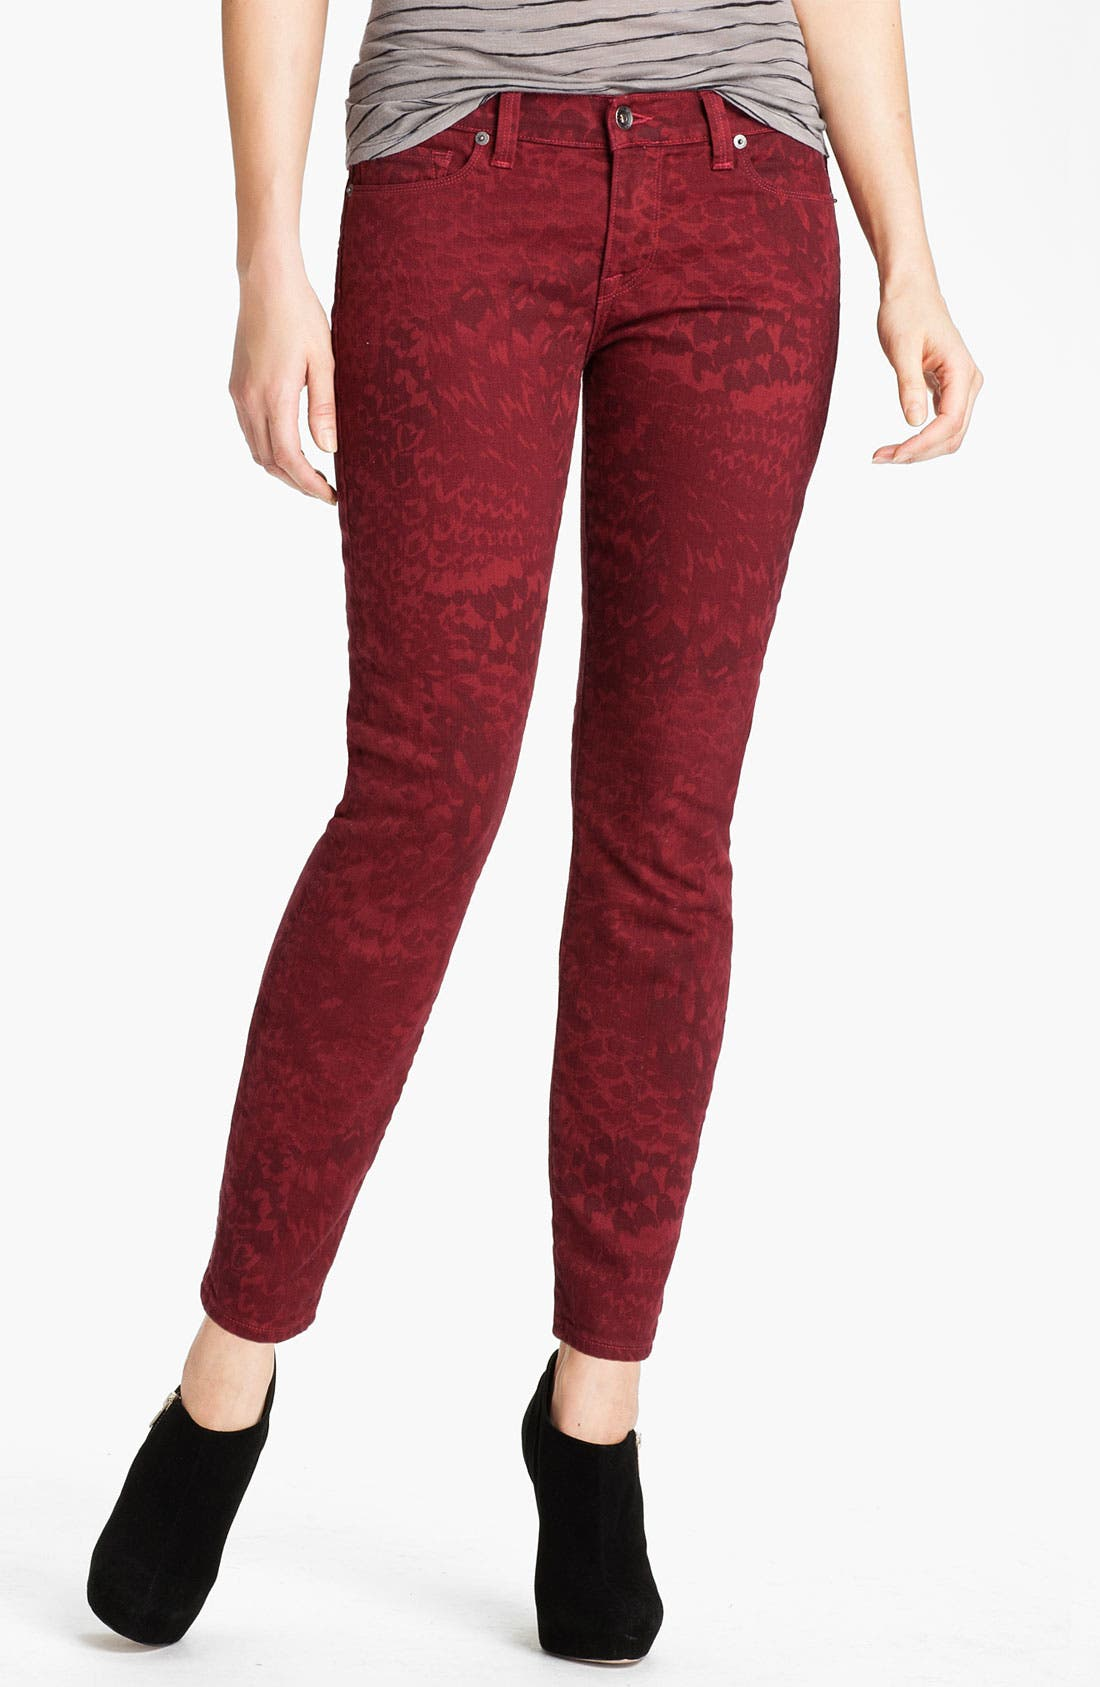 Alternate Image 1 Selected - Lucky Brand 'Legend Sofia' Skinny Print Jeans (Online Exclusive)